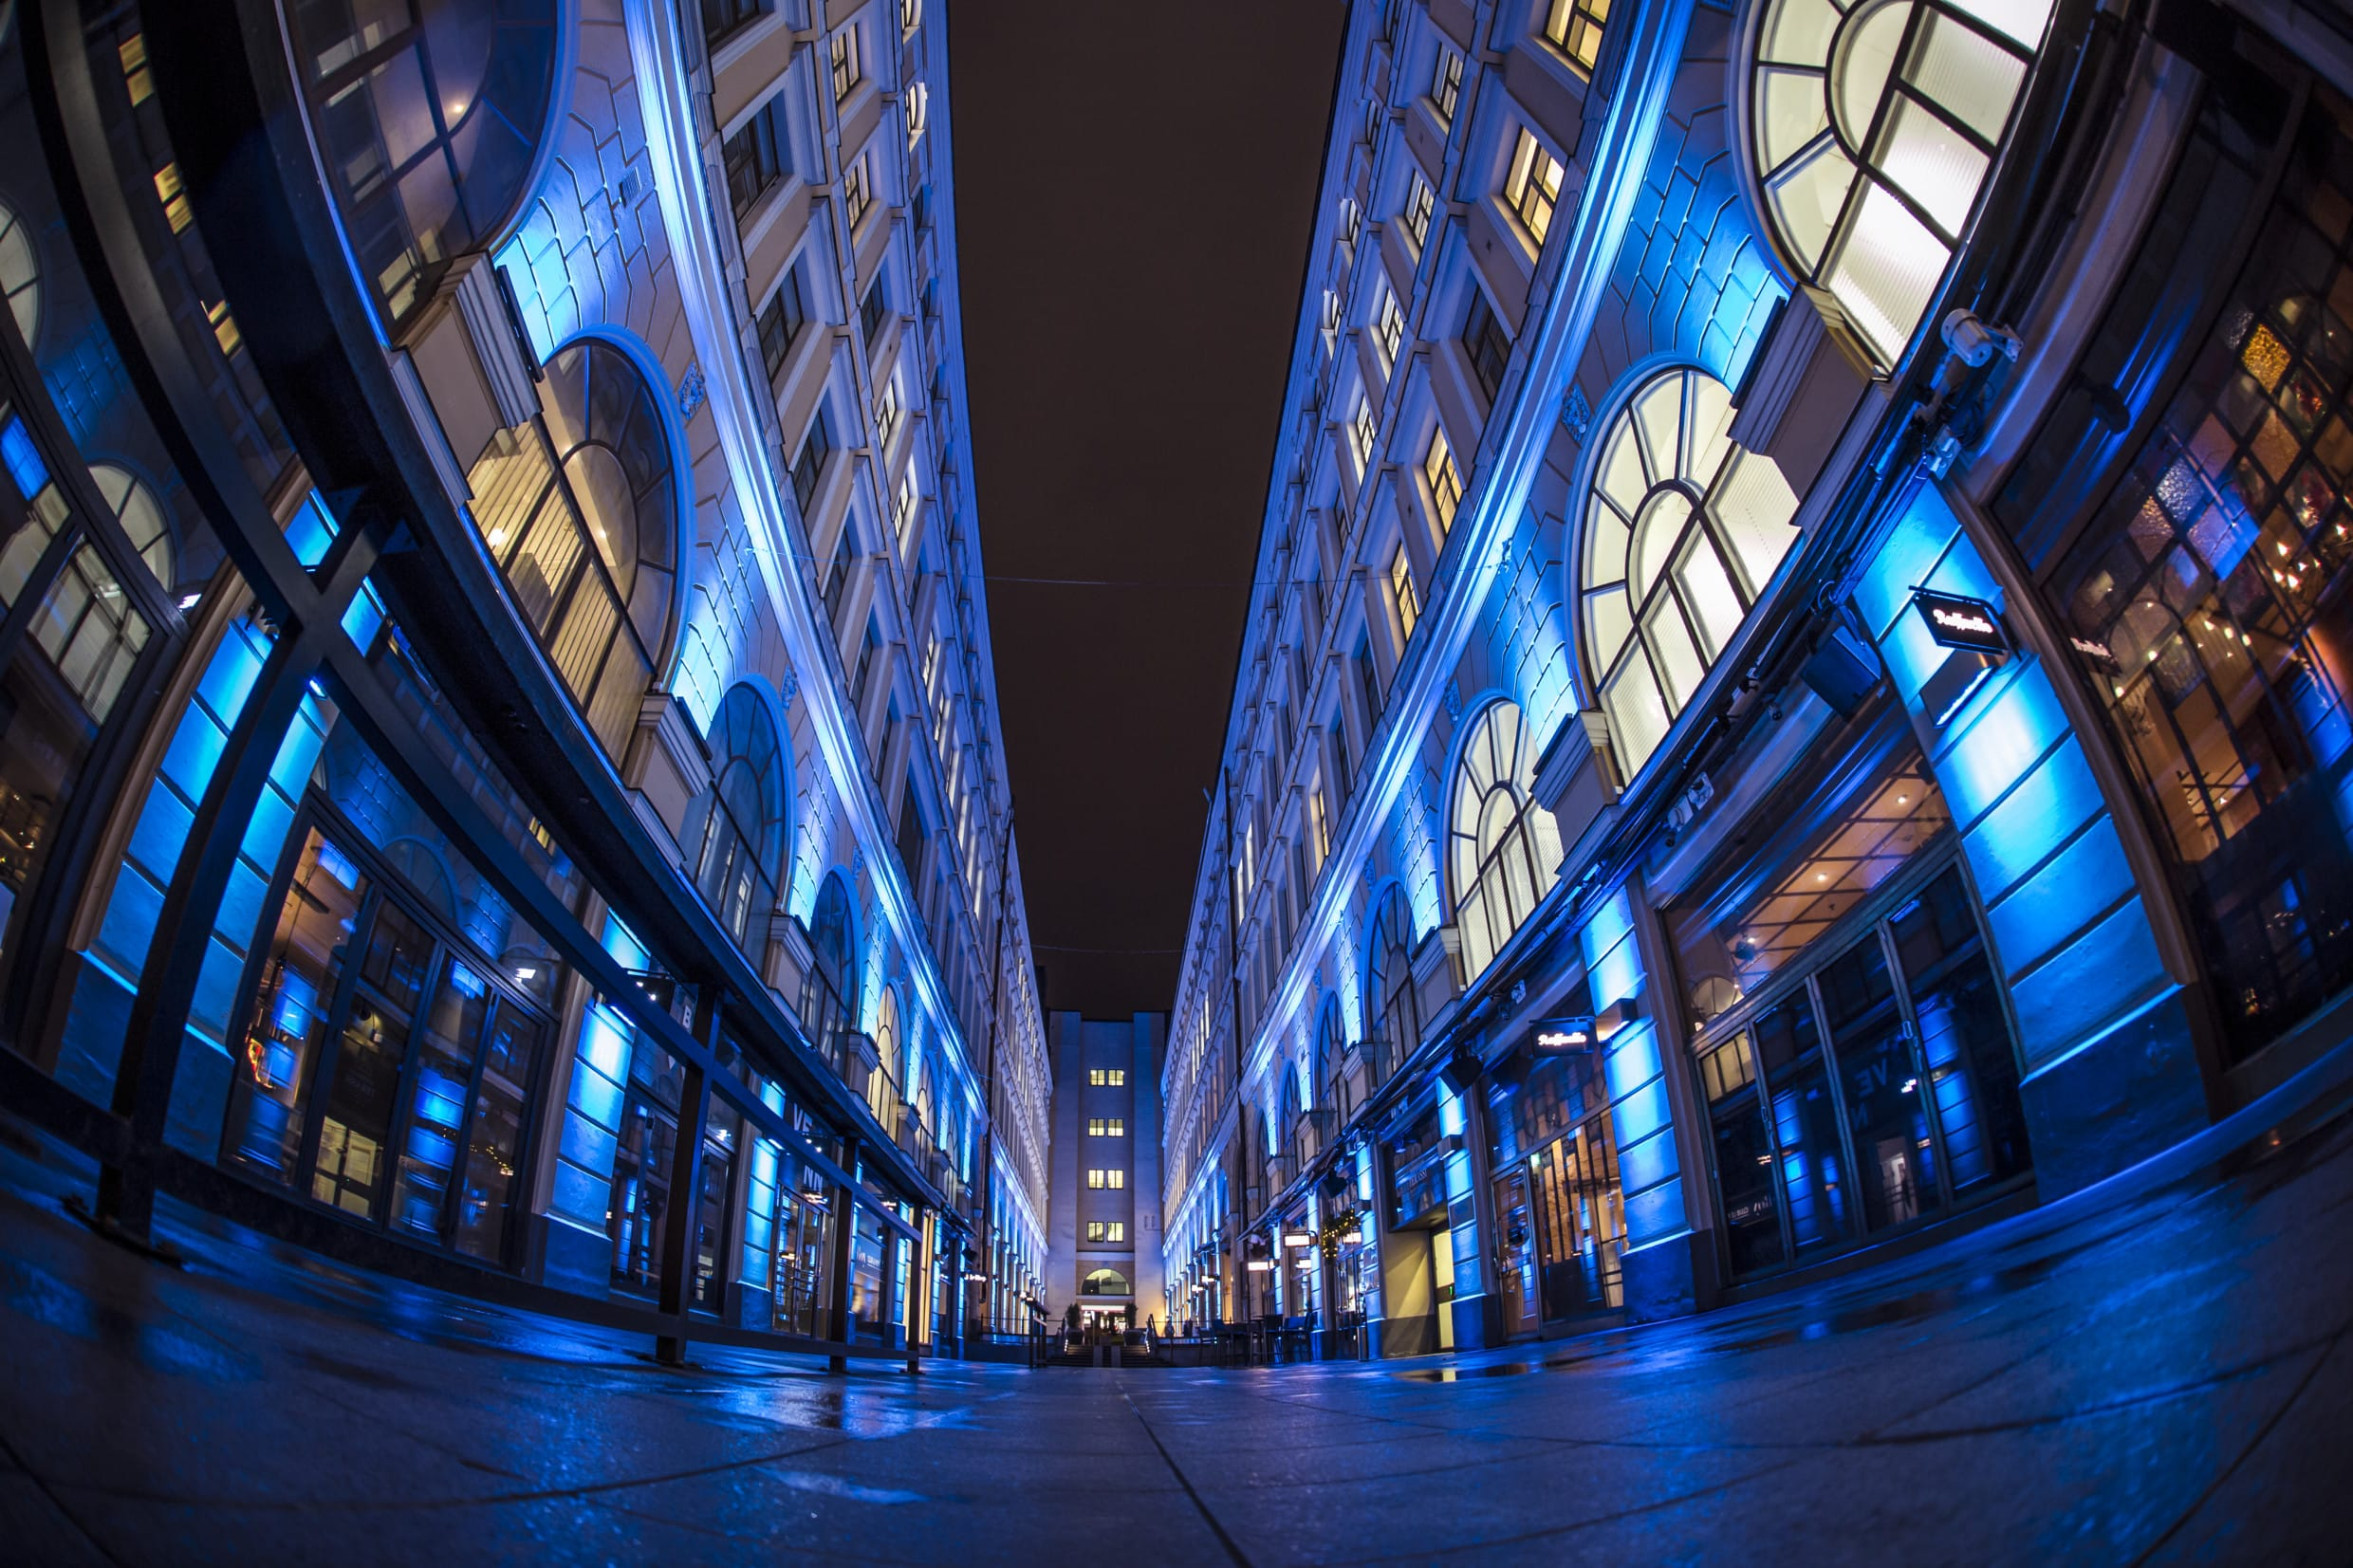 Old Wrede Passage in blue light